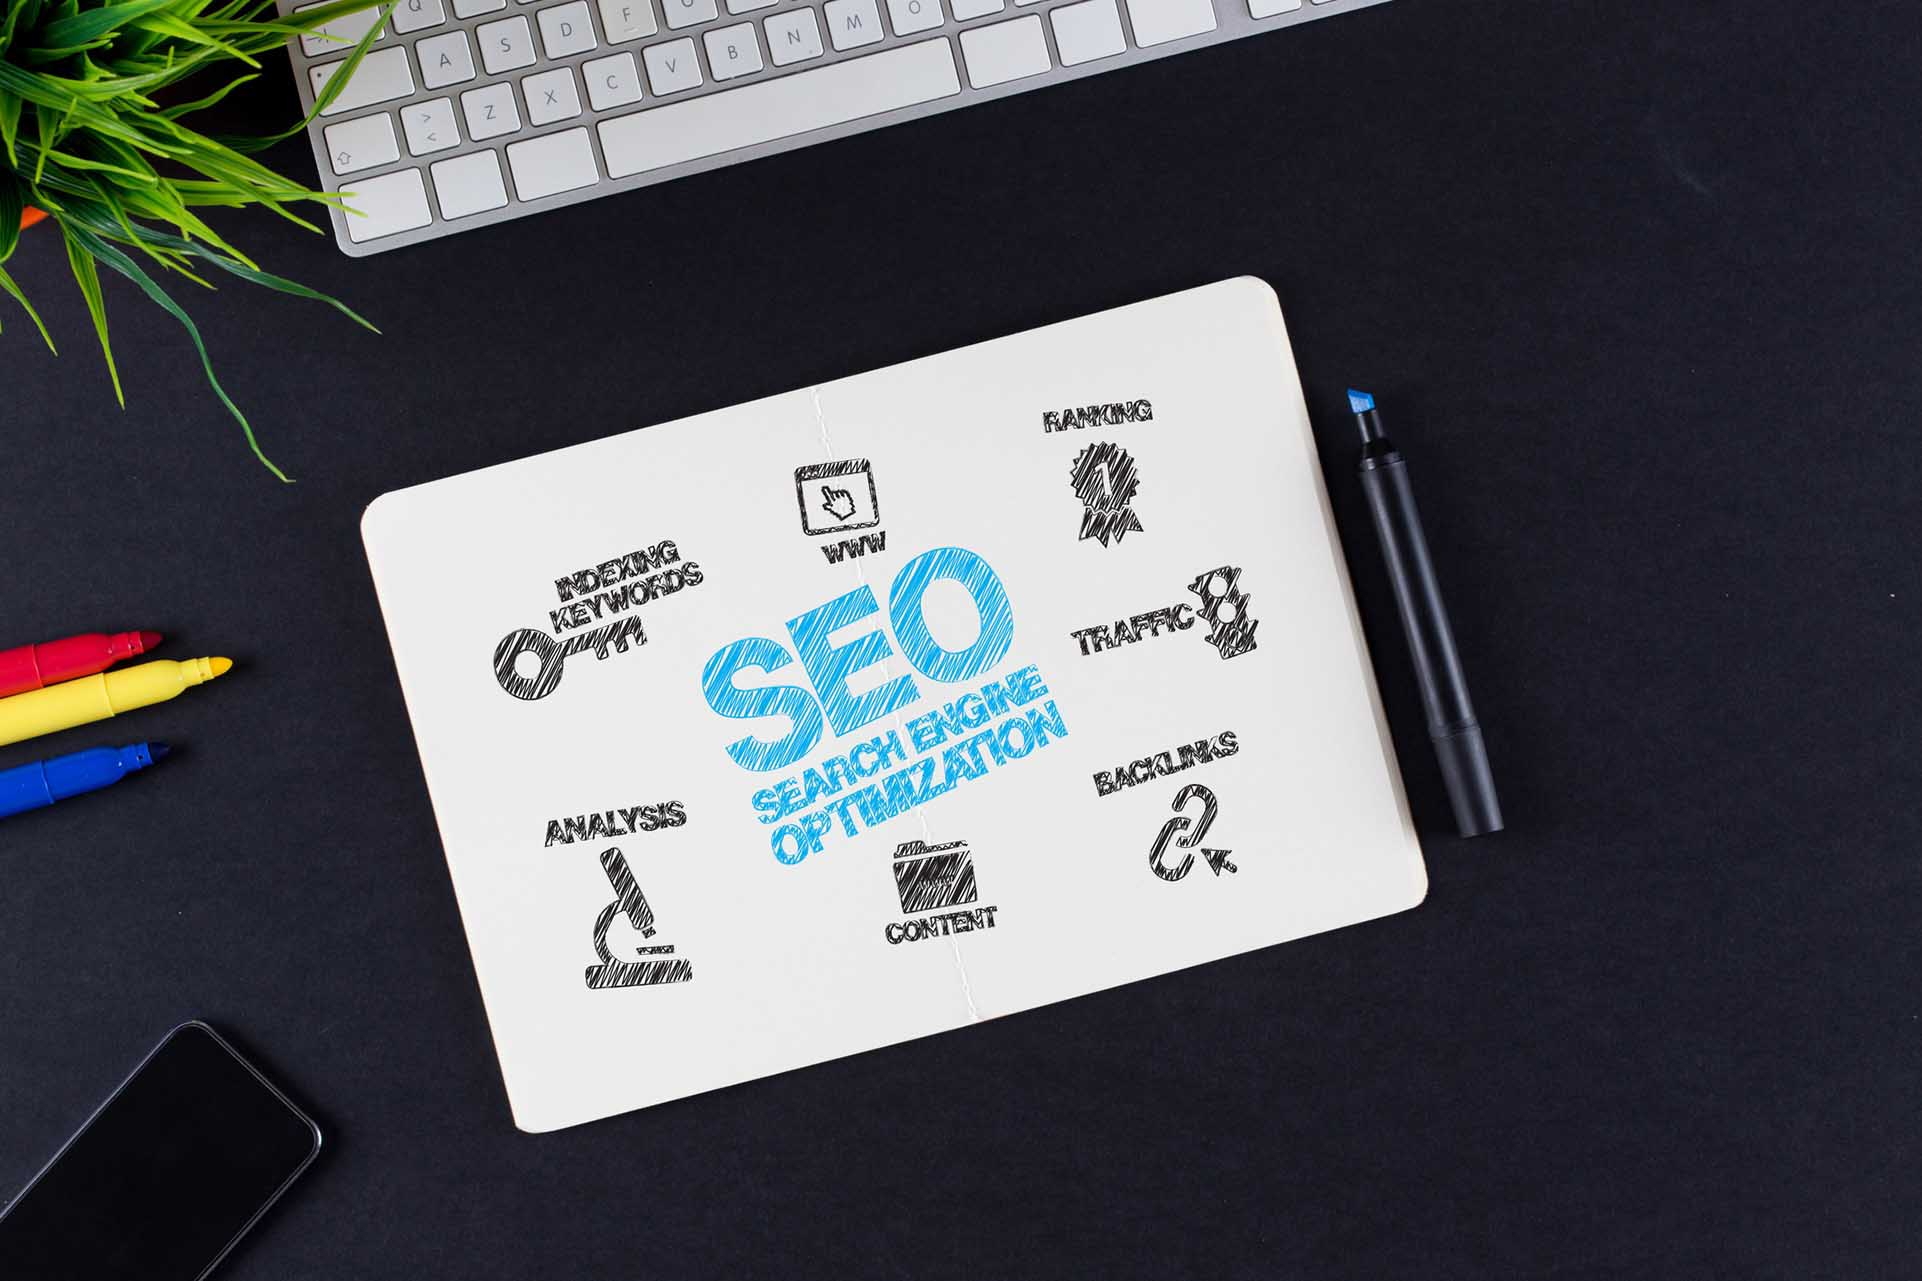 SEO Basics - A Guide of SEO Best Practices for Beginners